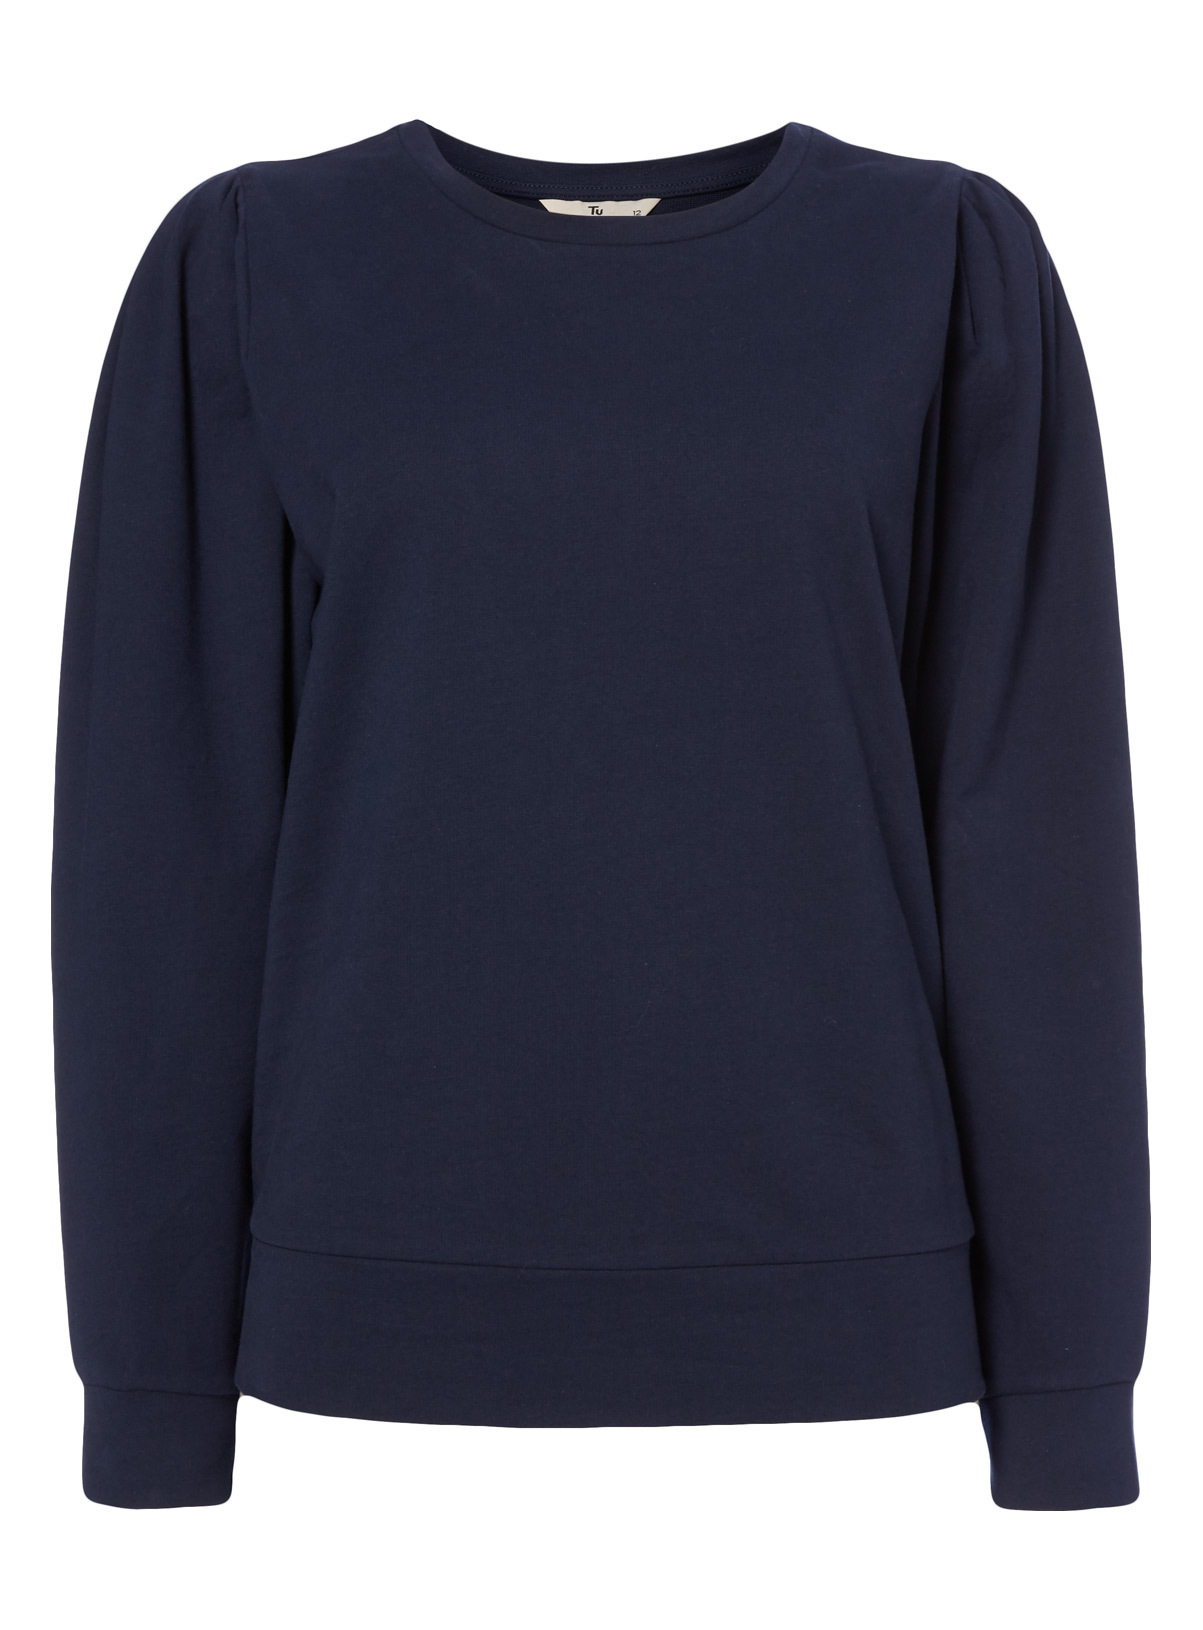 Womens Navy Balloon Sleeve Sweater | Tu clothing